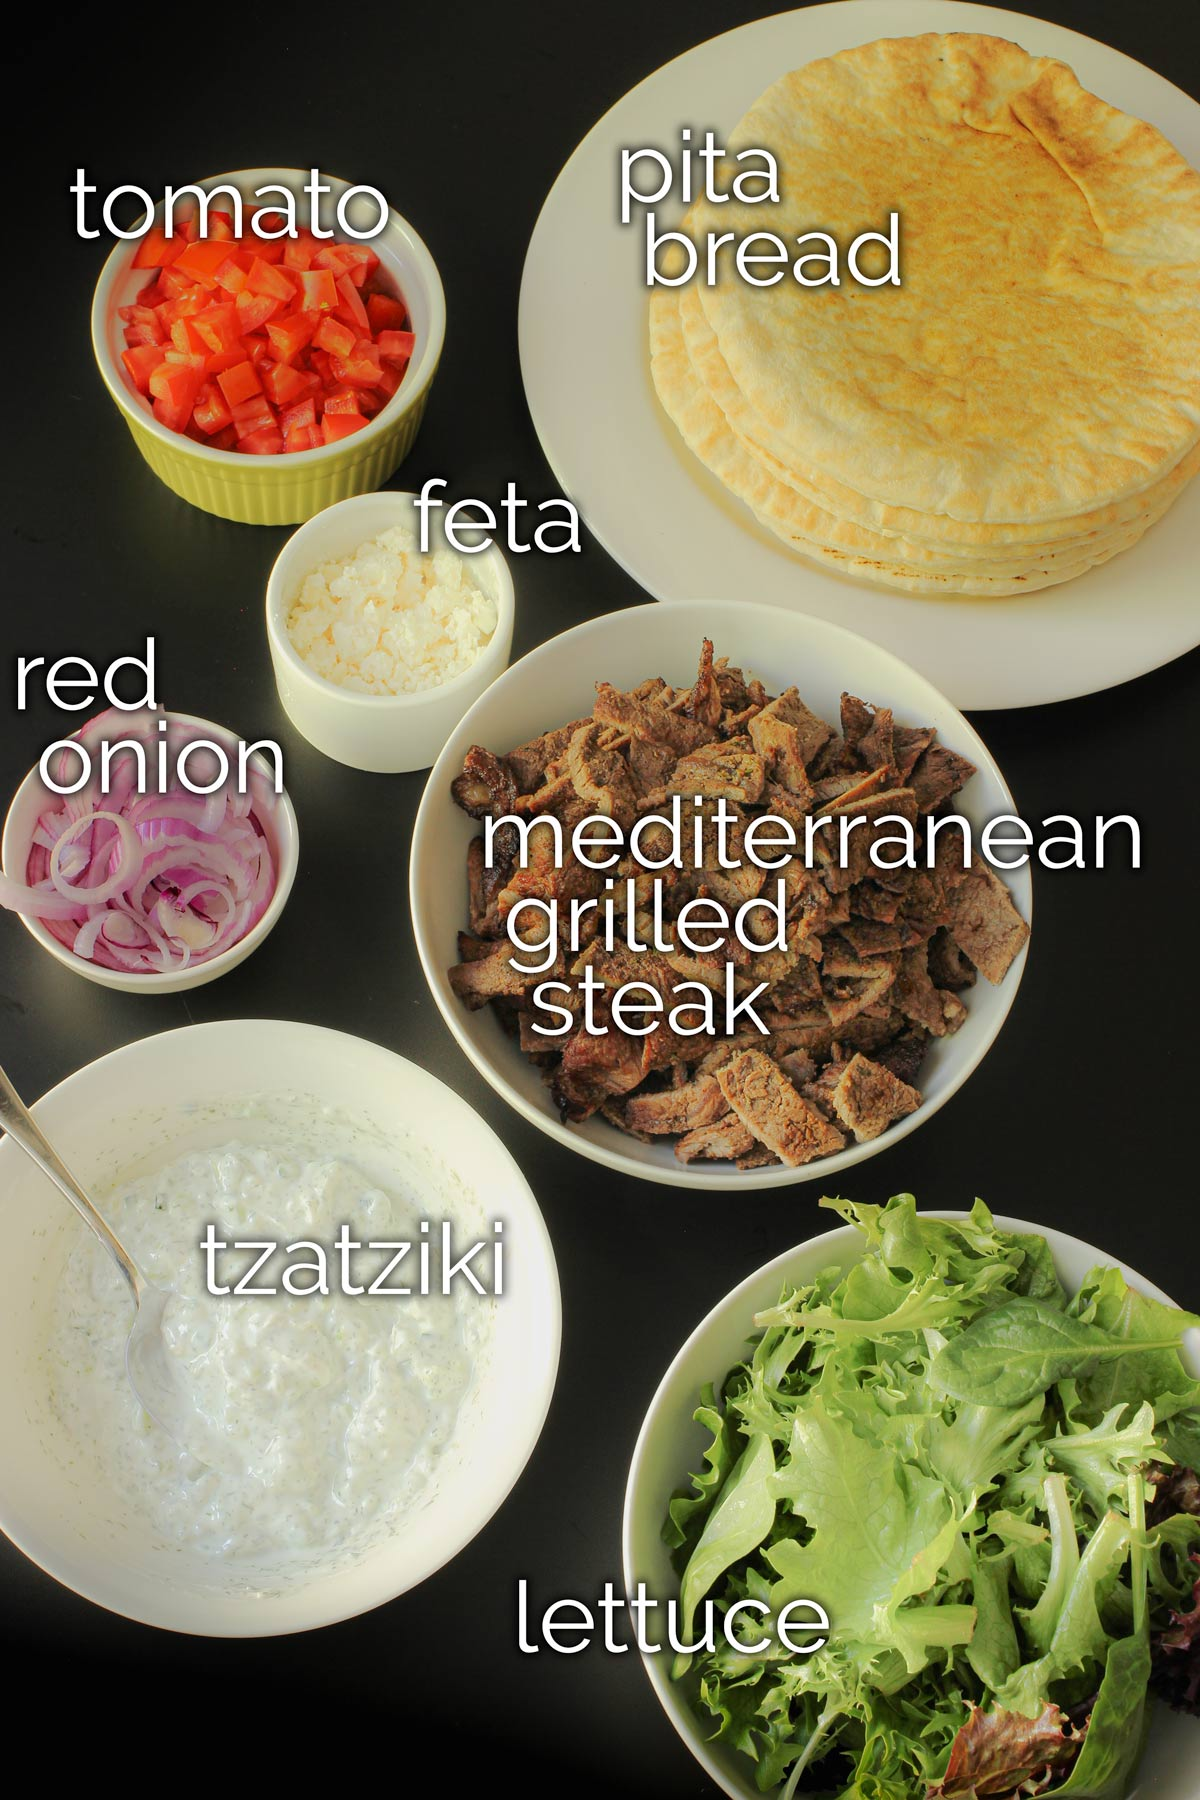 ingredients for greek pita sandwiches laid out on the table.